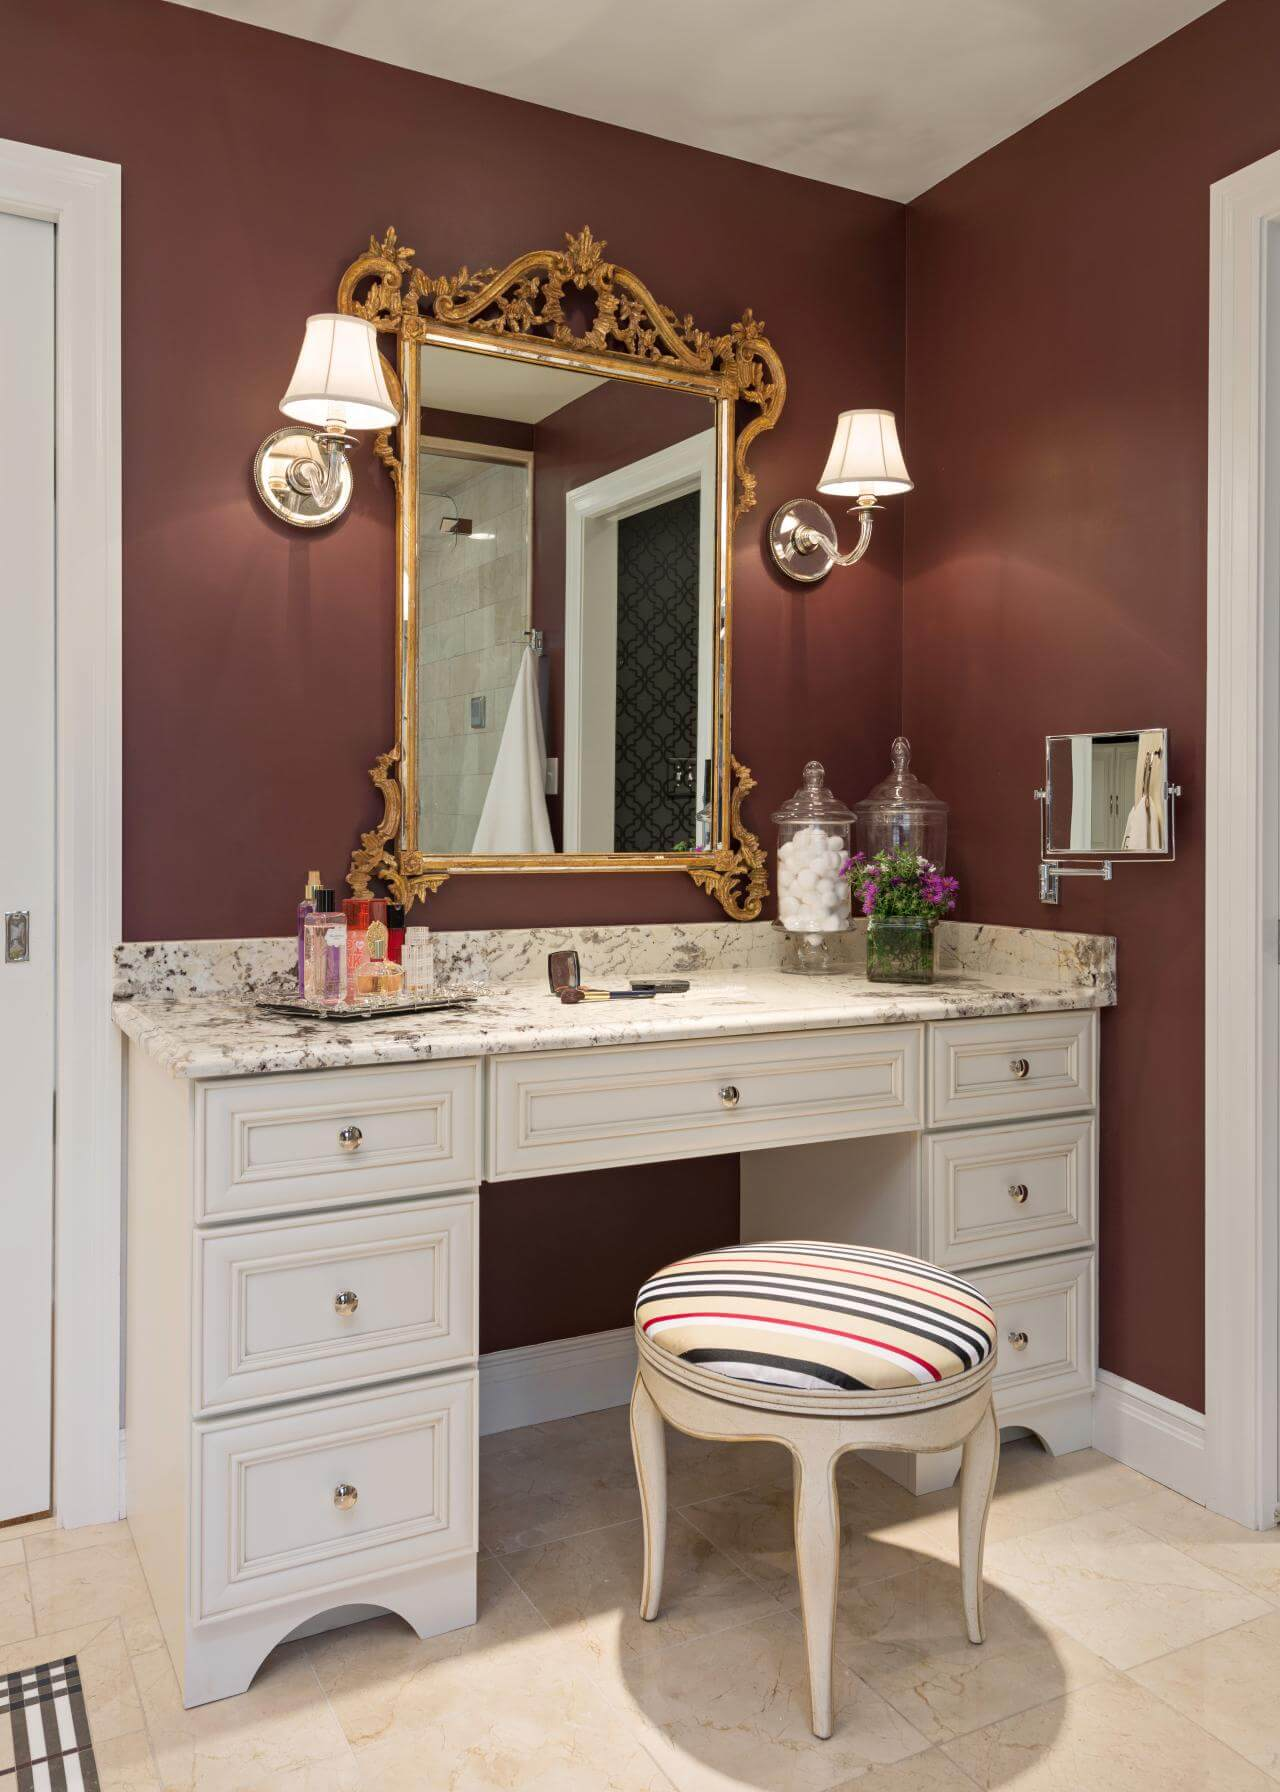 Beau Marble Topped Vanity With Baroque Style Mirror